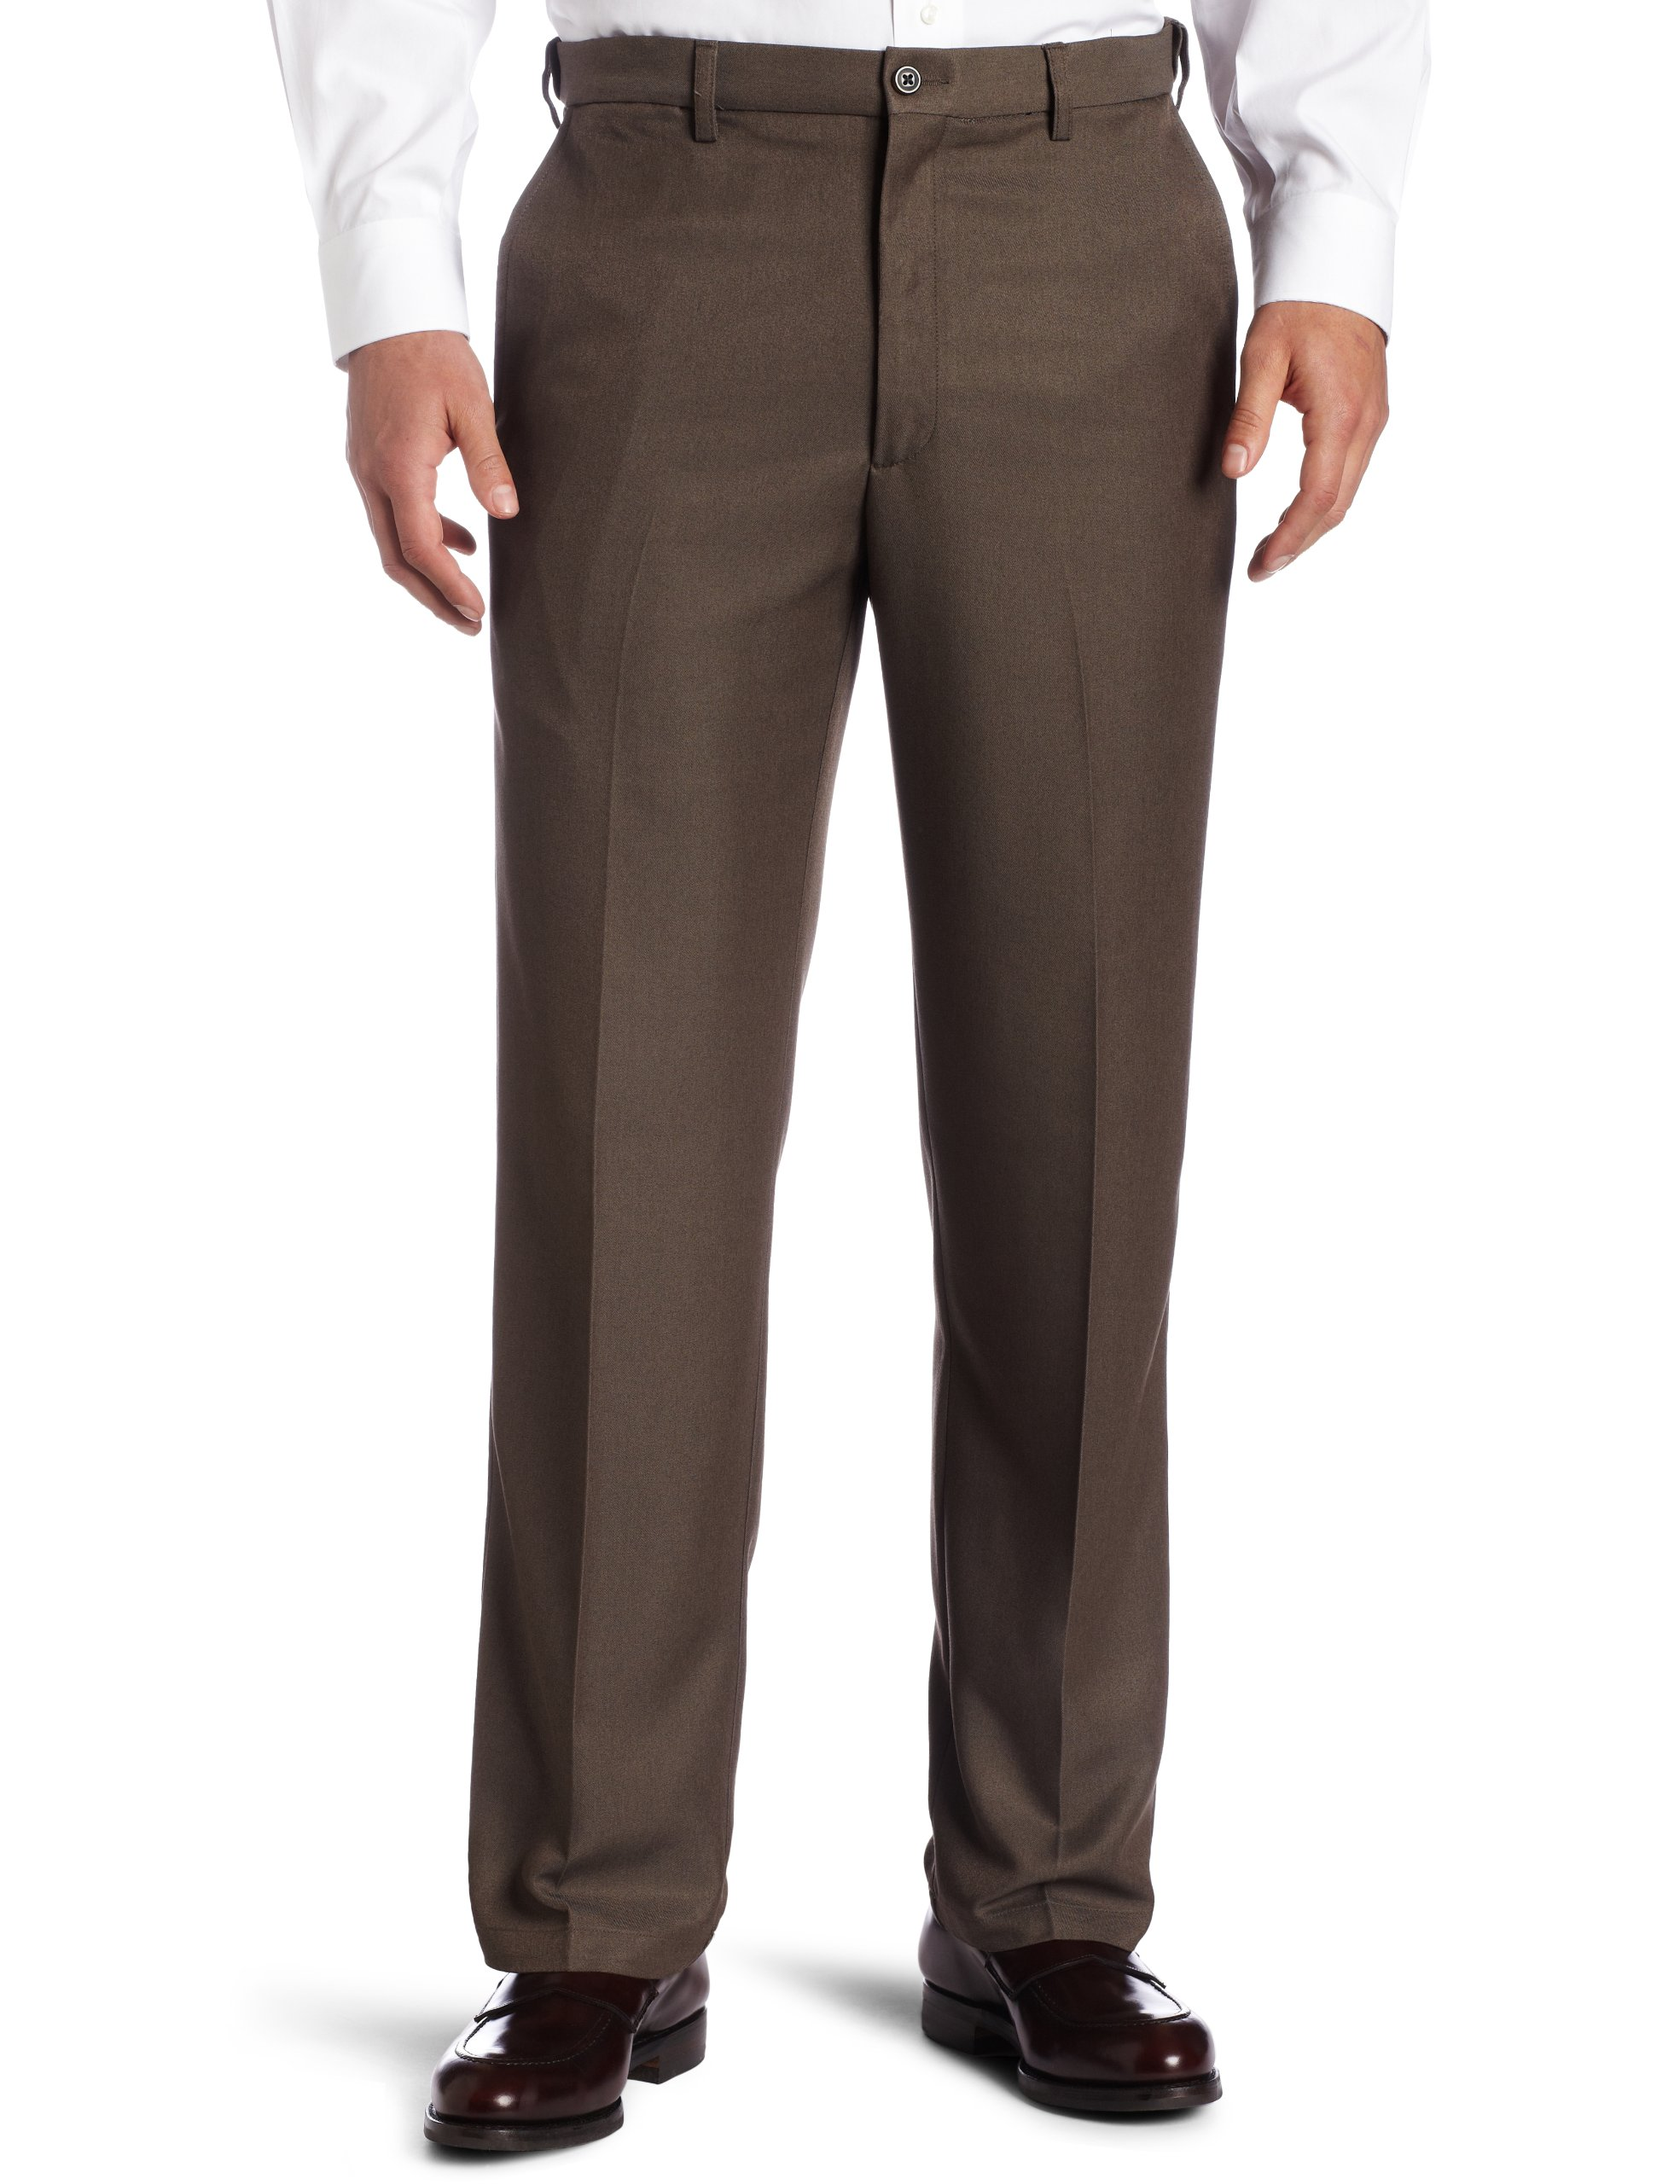 Haggar Men's Cool 18 Hidden Comfort Waist Plain Front Pant, Heather Brown,44x29